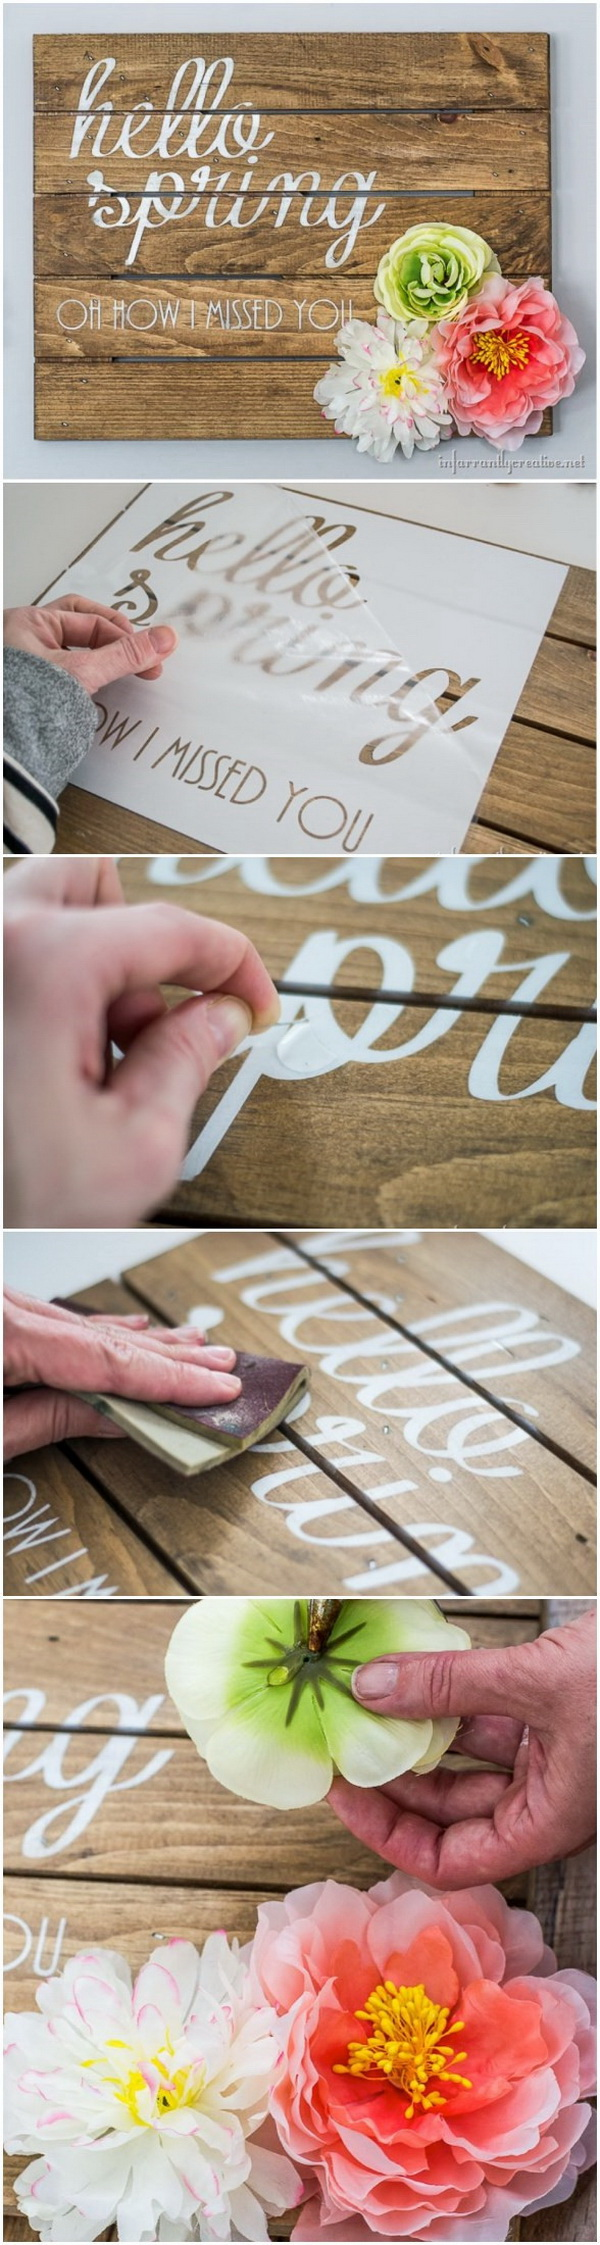 DIY Rustic Spring Sign. Create a lovely and sweet rustic spring sign to sit on the mantle and welcome spring.